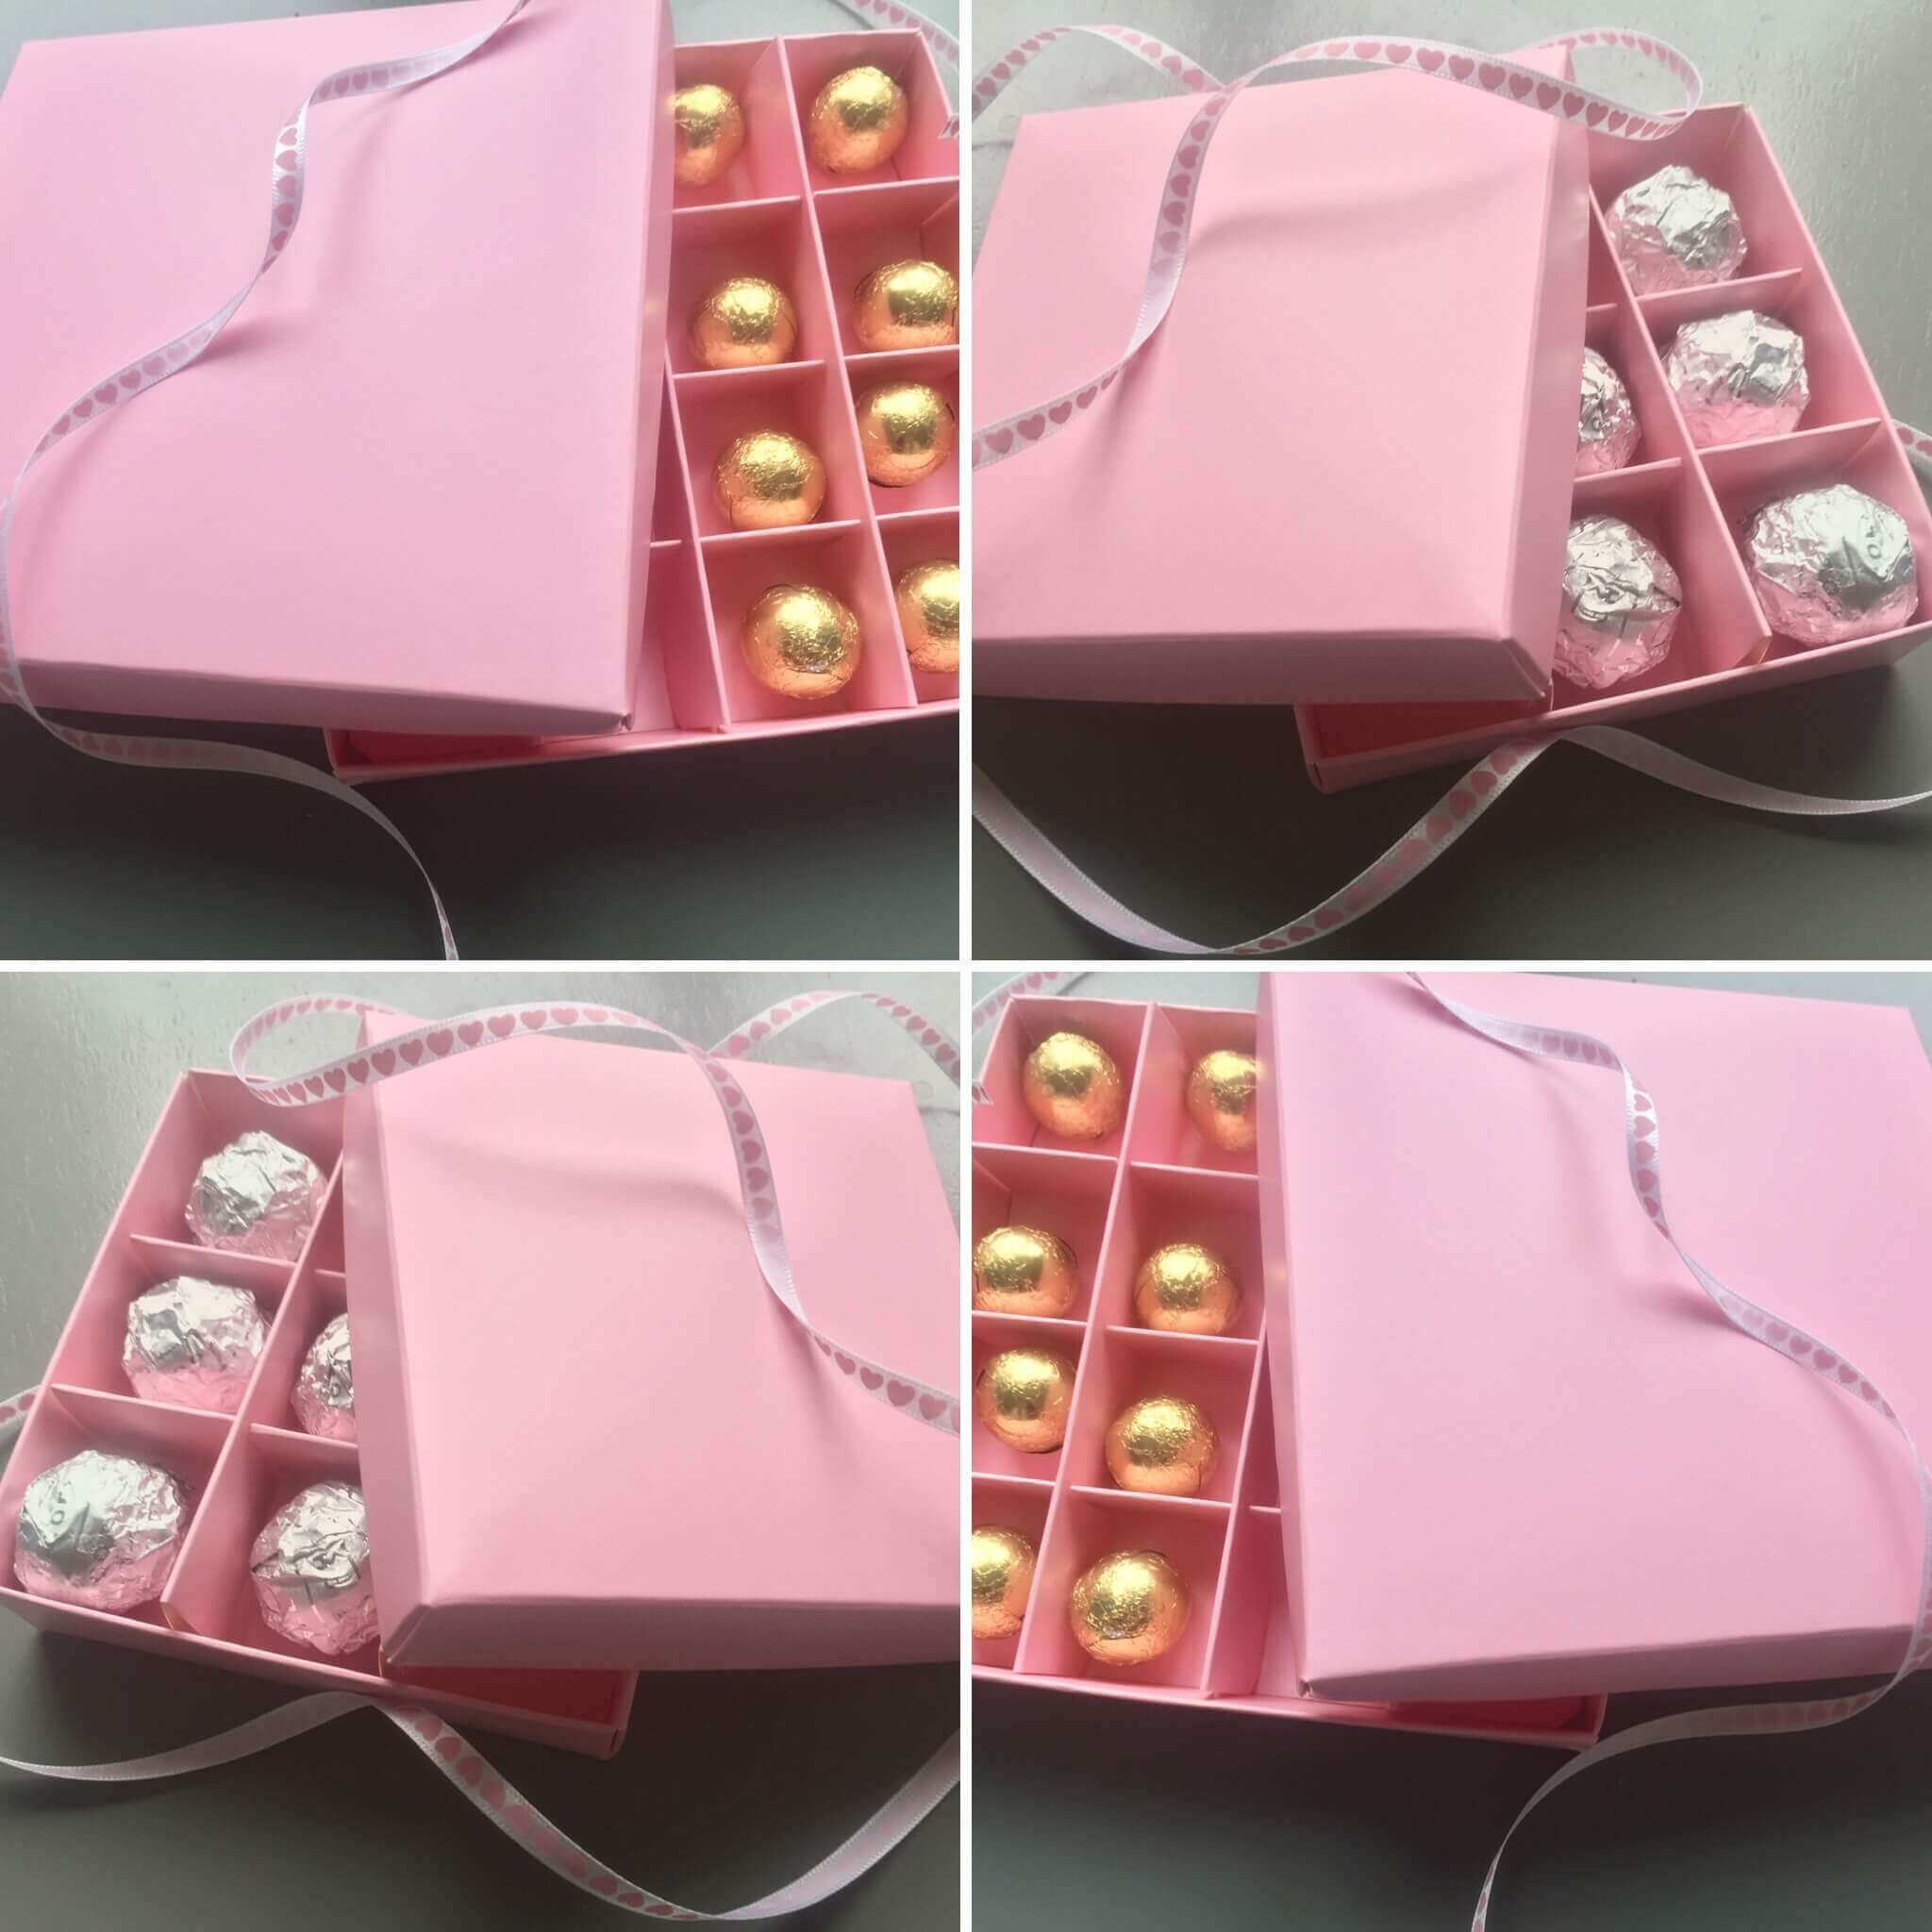 9 & 16 Pack Confectionary Boxes in Pink with Pink Inserts